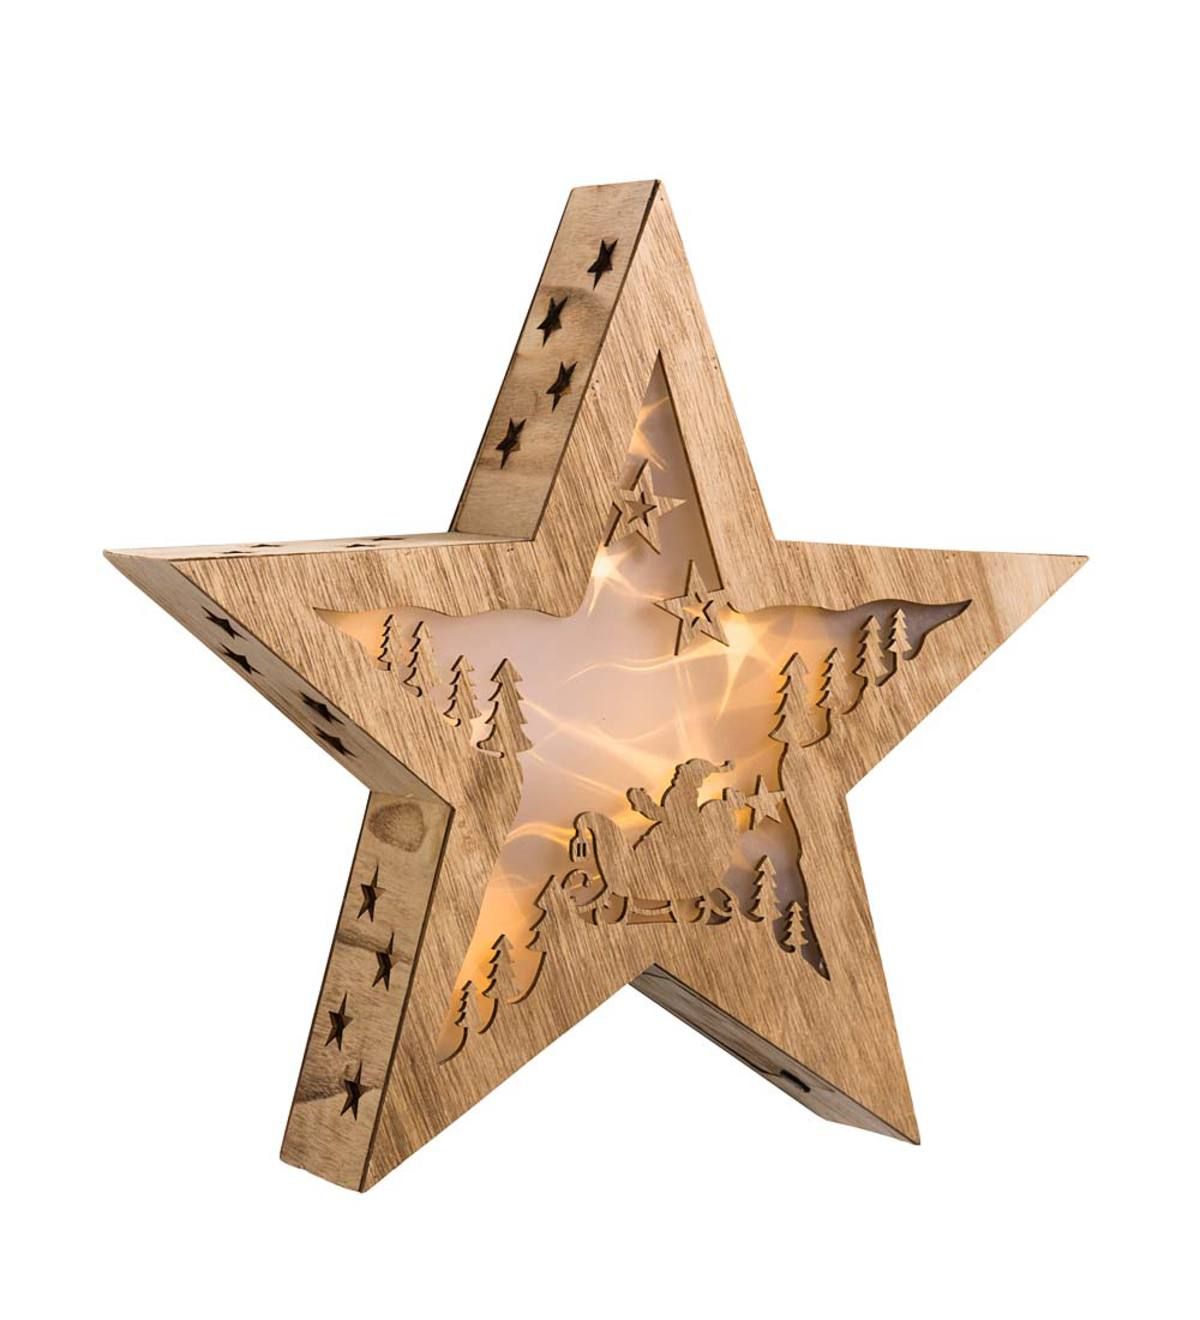 Wooden Star or Snowflake with Lighted Holographic Inset - Star